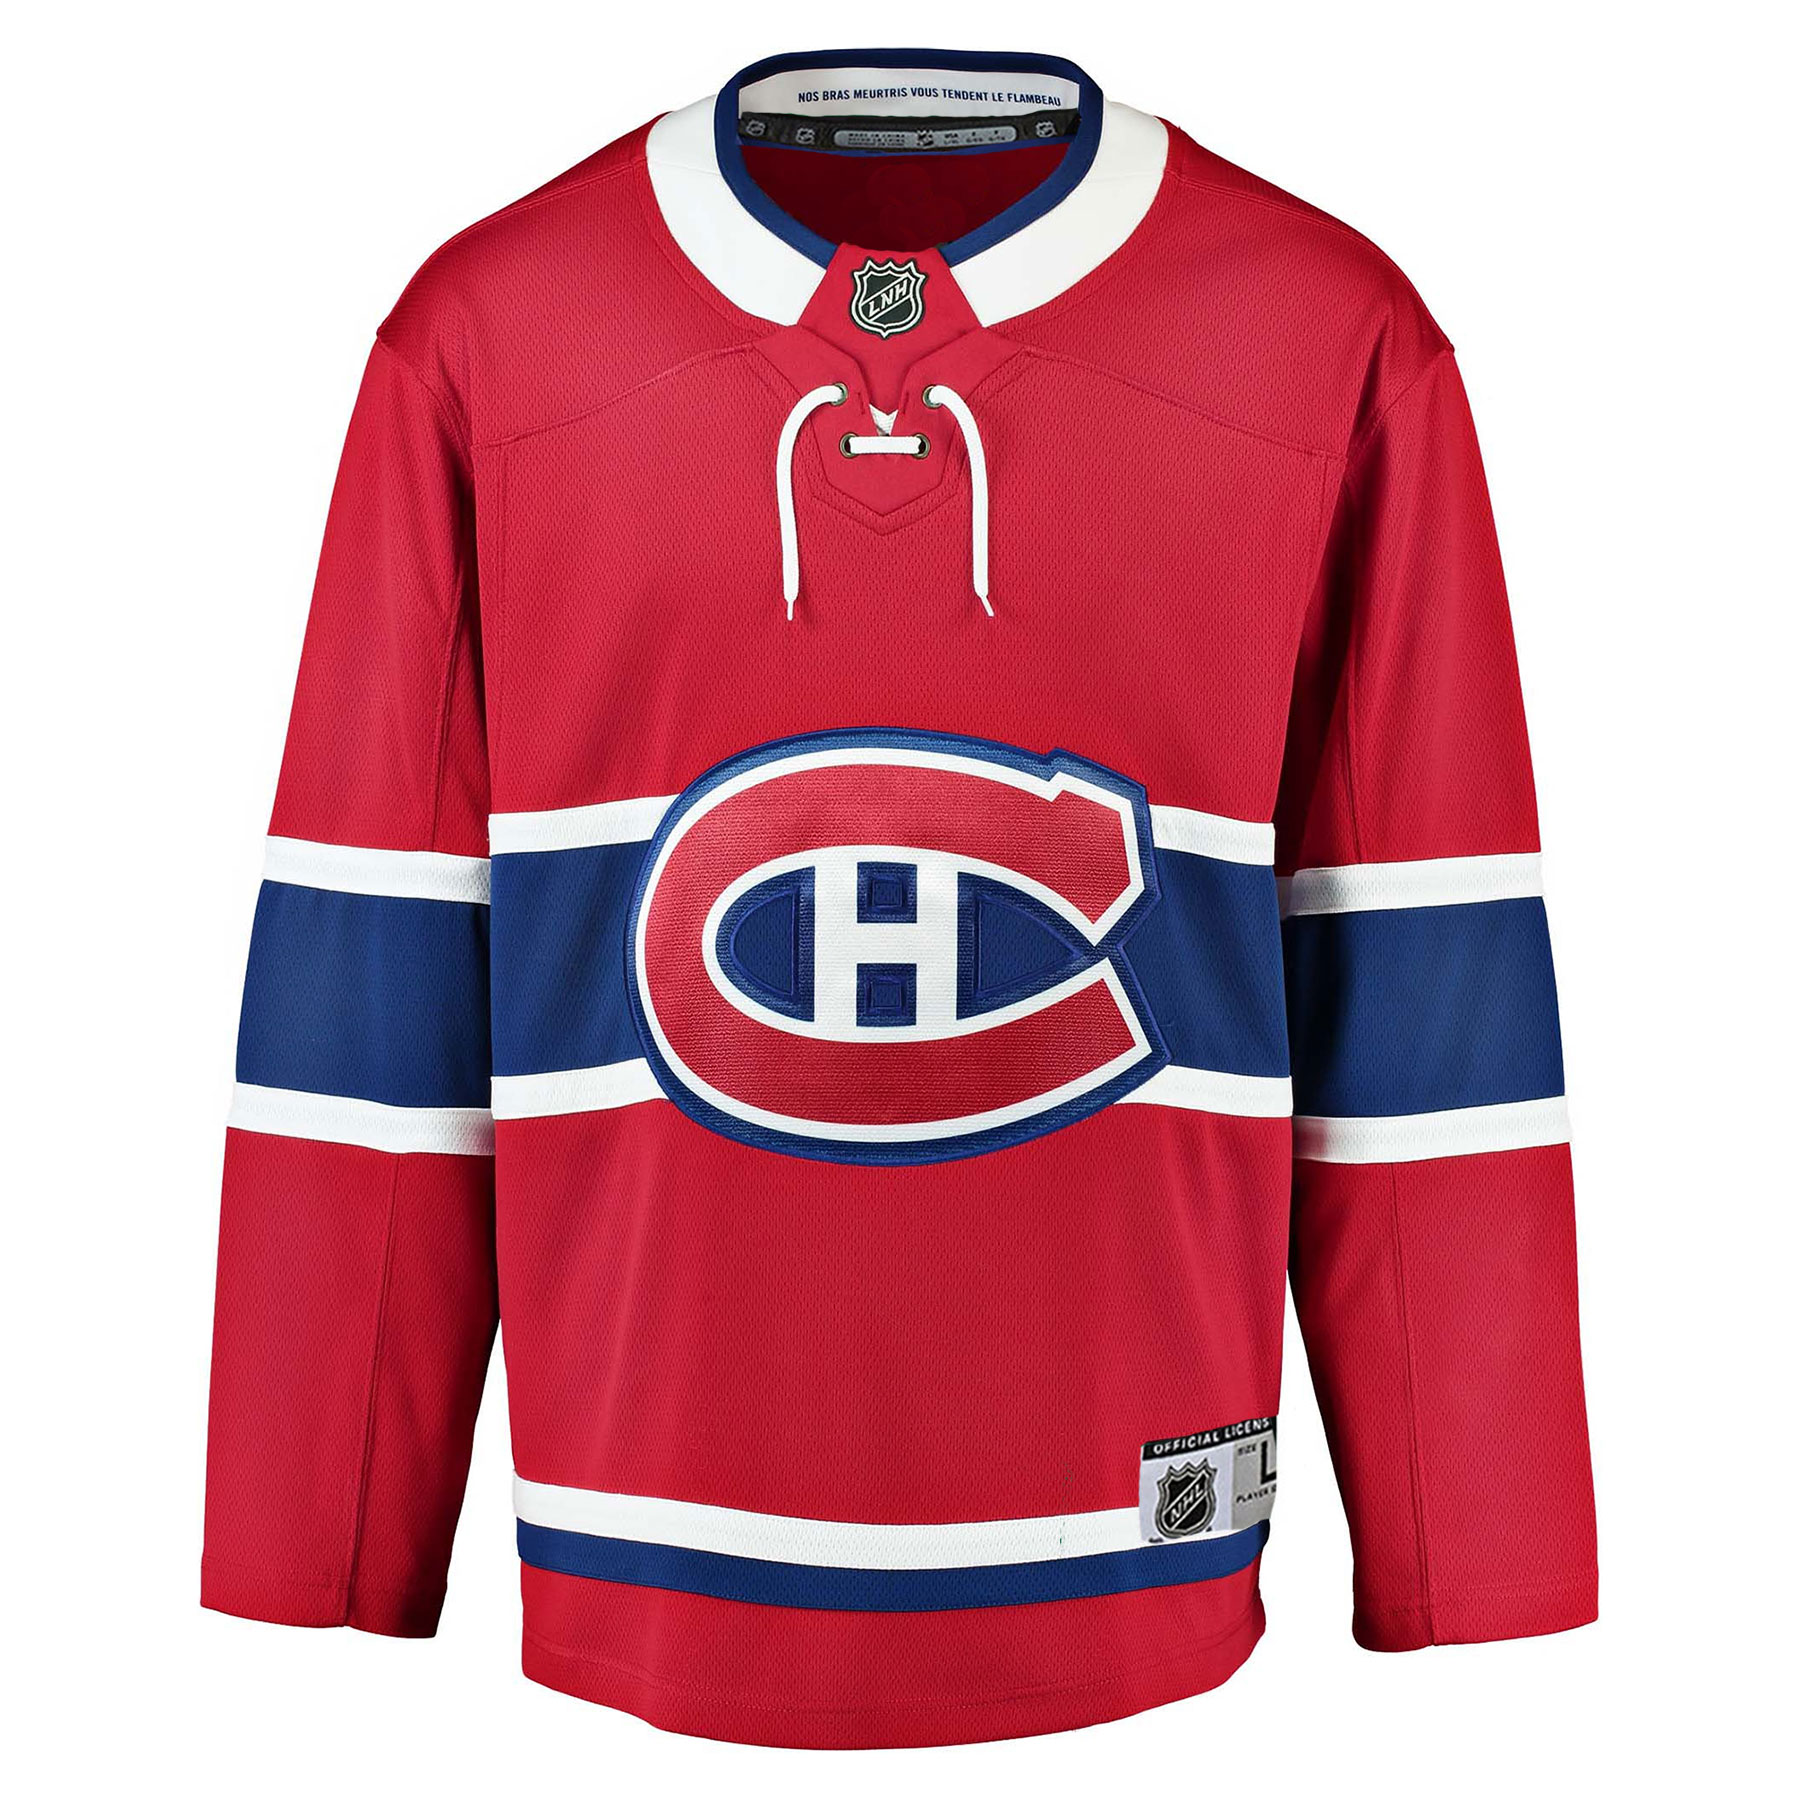 best cheap 29055 30f00 Montreal Canadiens NHL Premier Youth Replica Home Hockey Jersey - NHL Team  Apparel